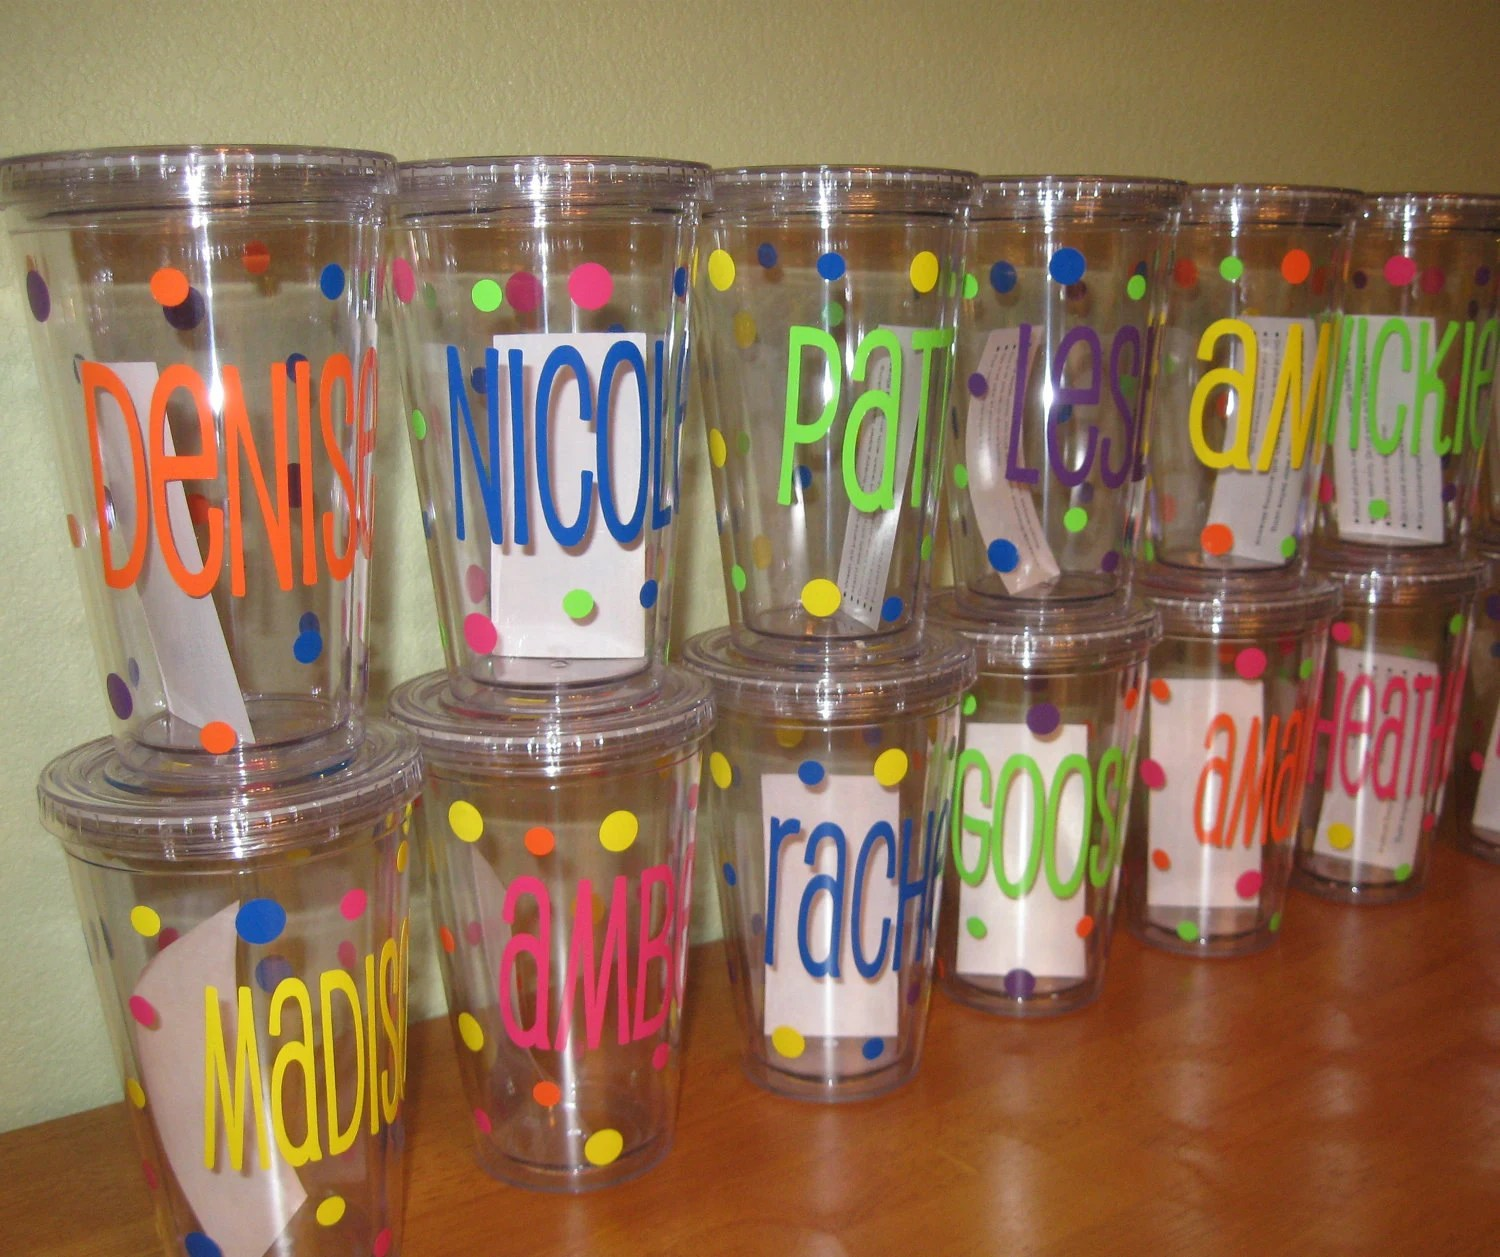 Quantity 12 Personalized acrylic tumbler w/ lid and straw - mix and match any design, Clear or Black cups, name or monogram w/ polka dots